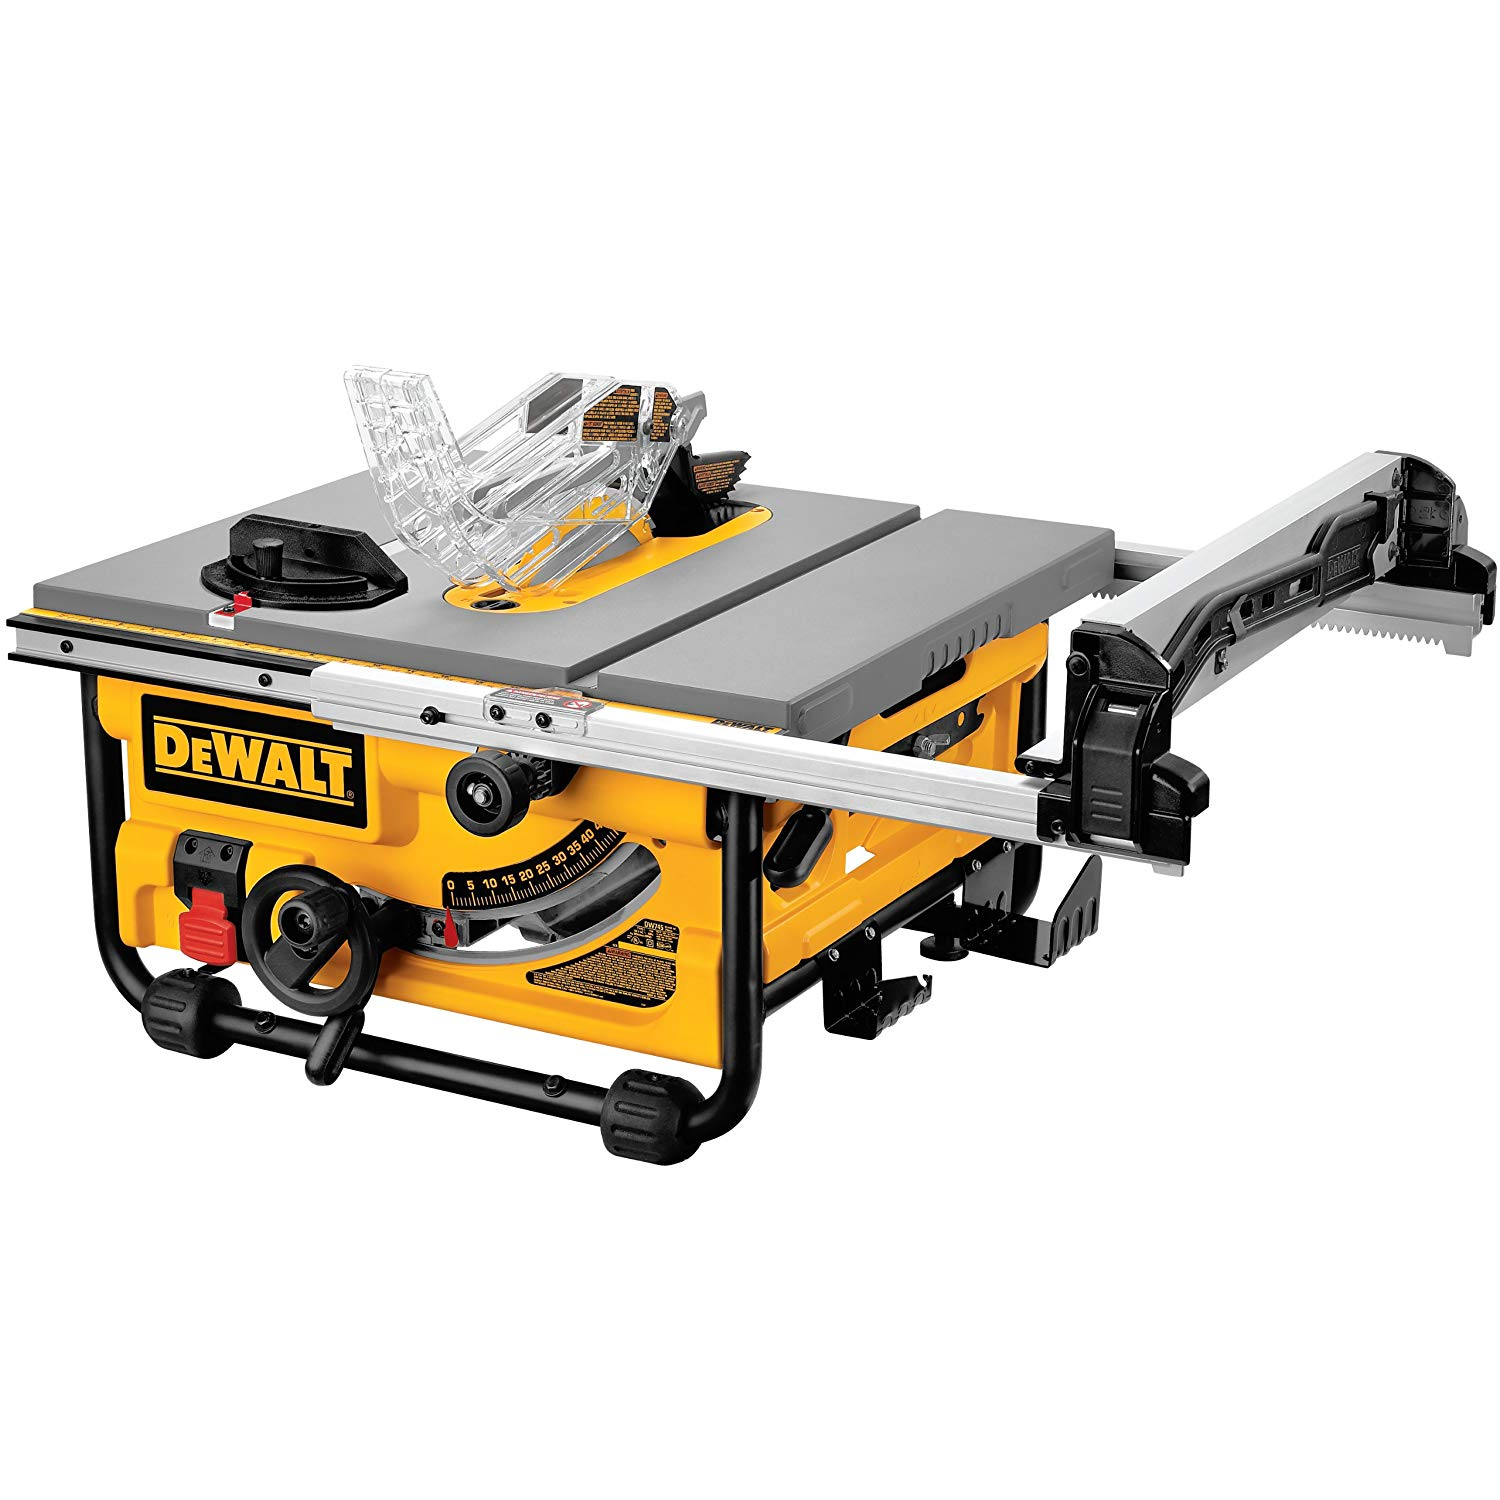 """DeWalt: 15-Amp Corded 10"""" Compact Table Saw w/ Site-Pro Modular Guarding System"""